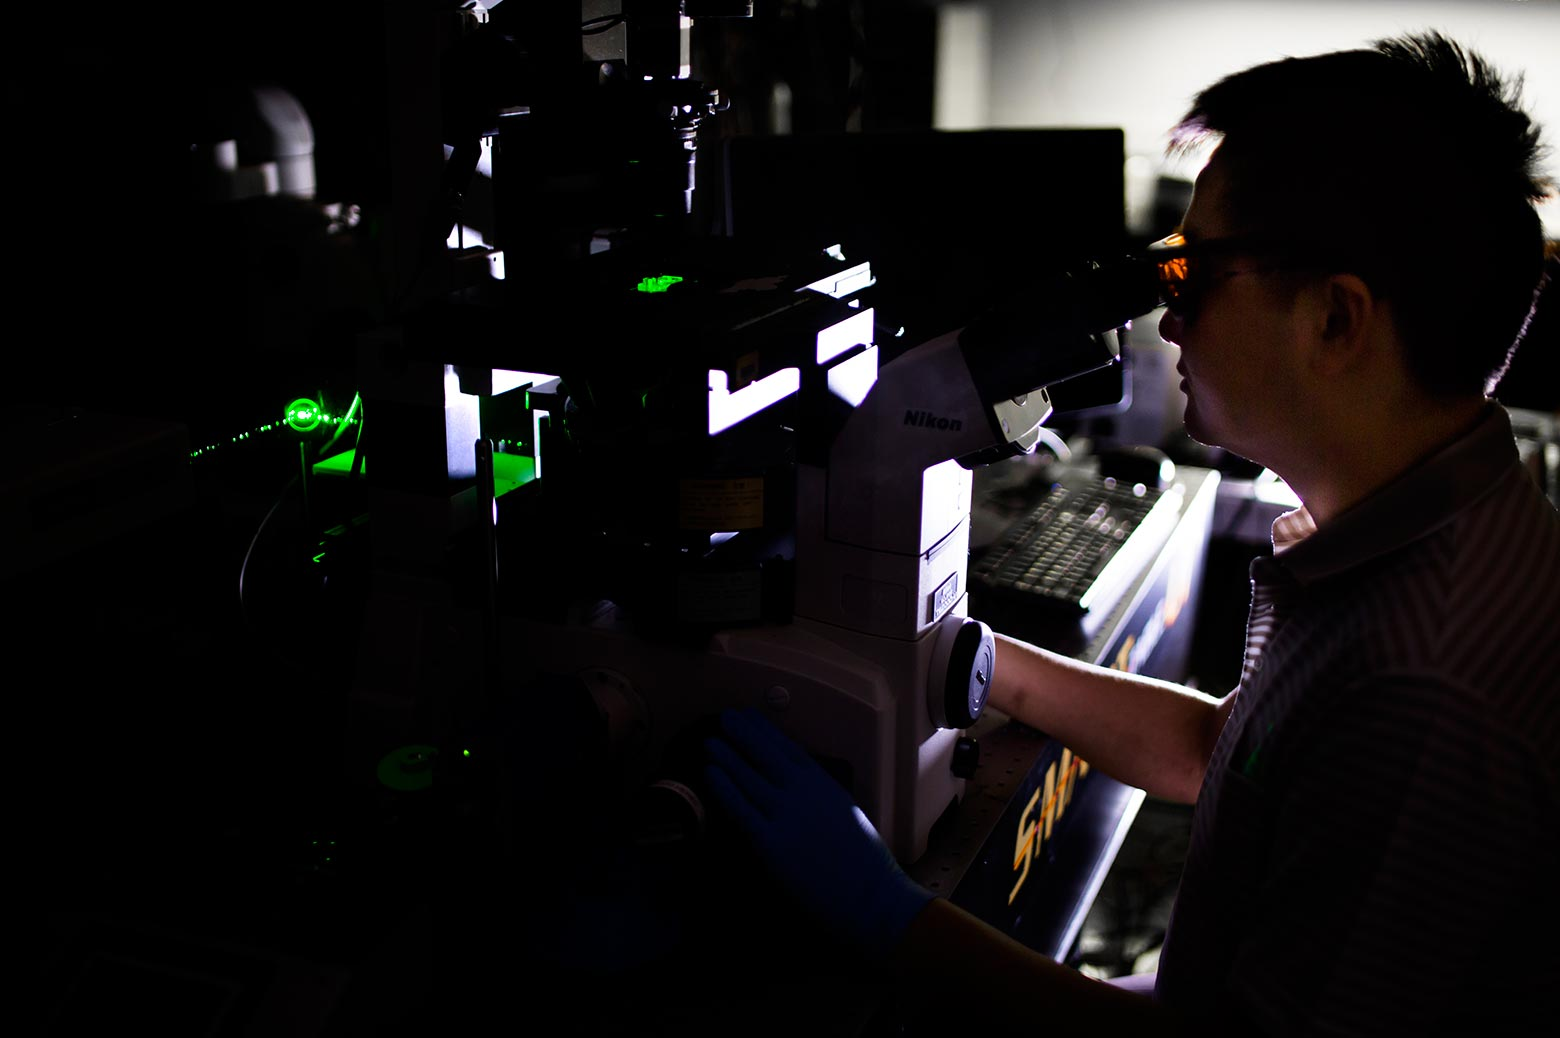 Scientist at work in a dark lab